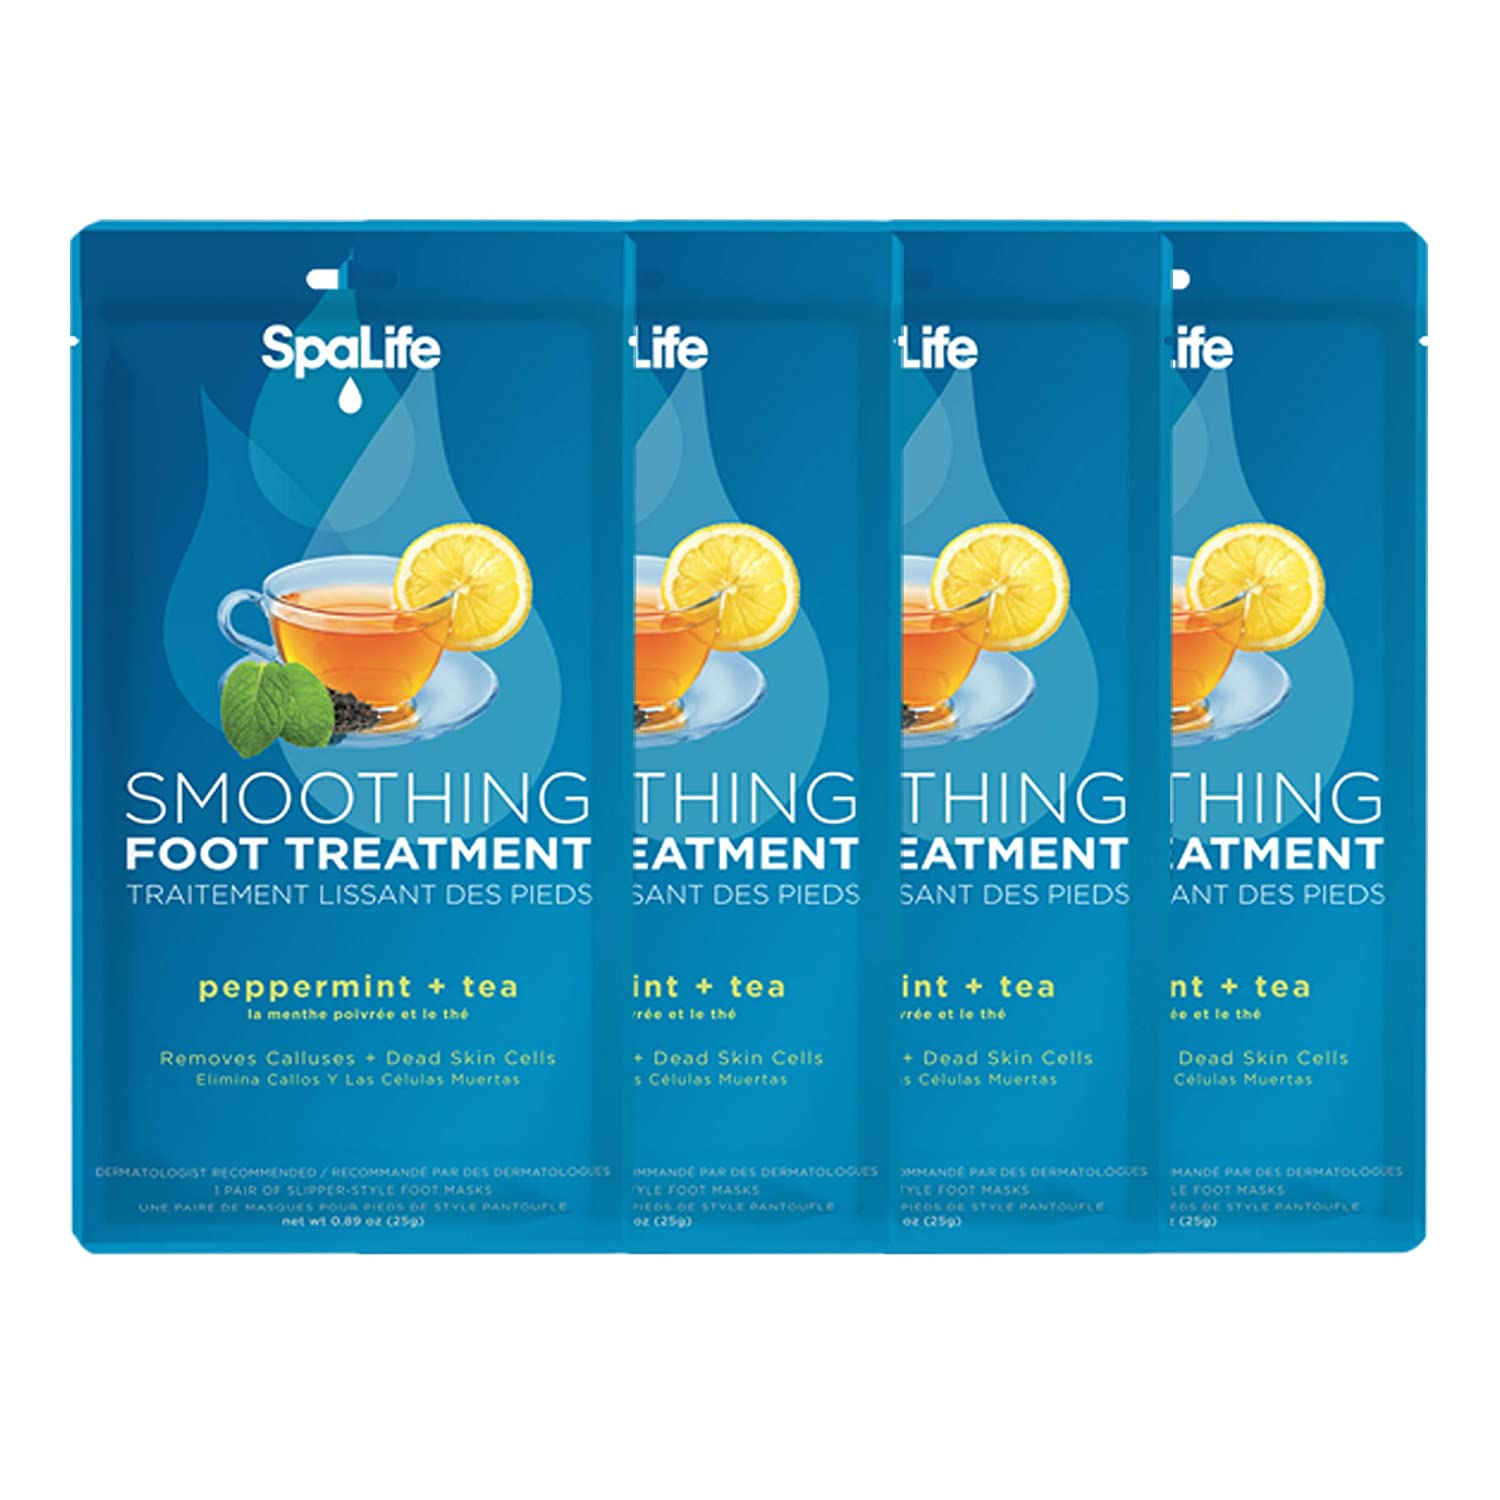 Spa Life Natural Extract Smoothing Foot Treatment Foot Masks (Peppermint + Tea, 4)